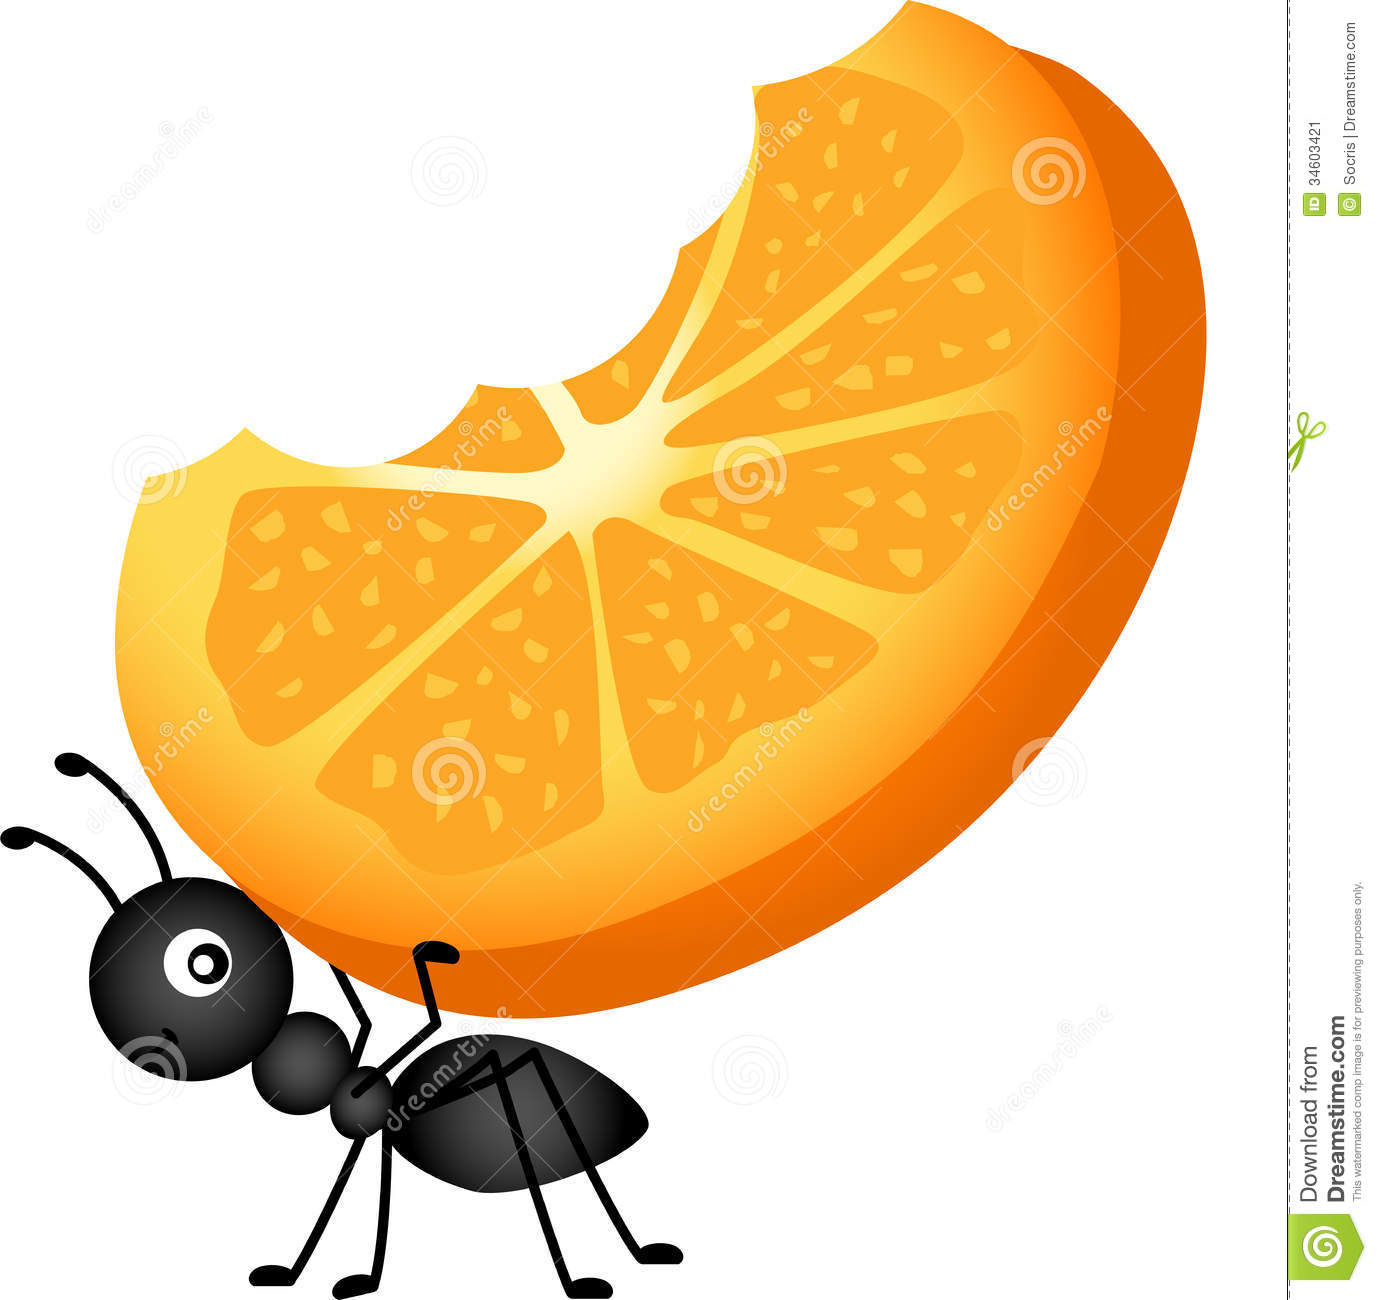 Ants clipart food. Picnic